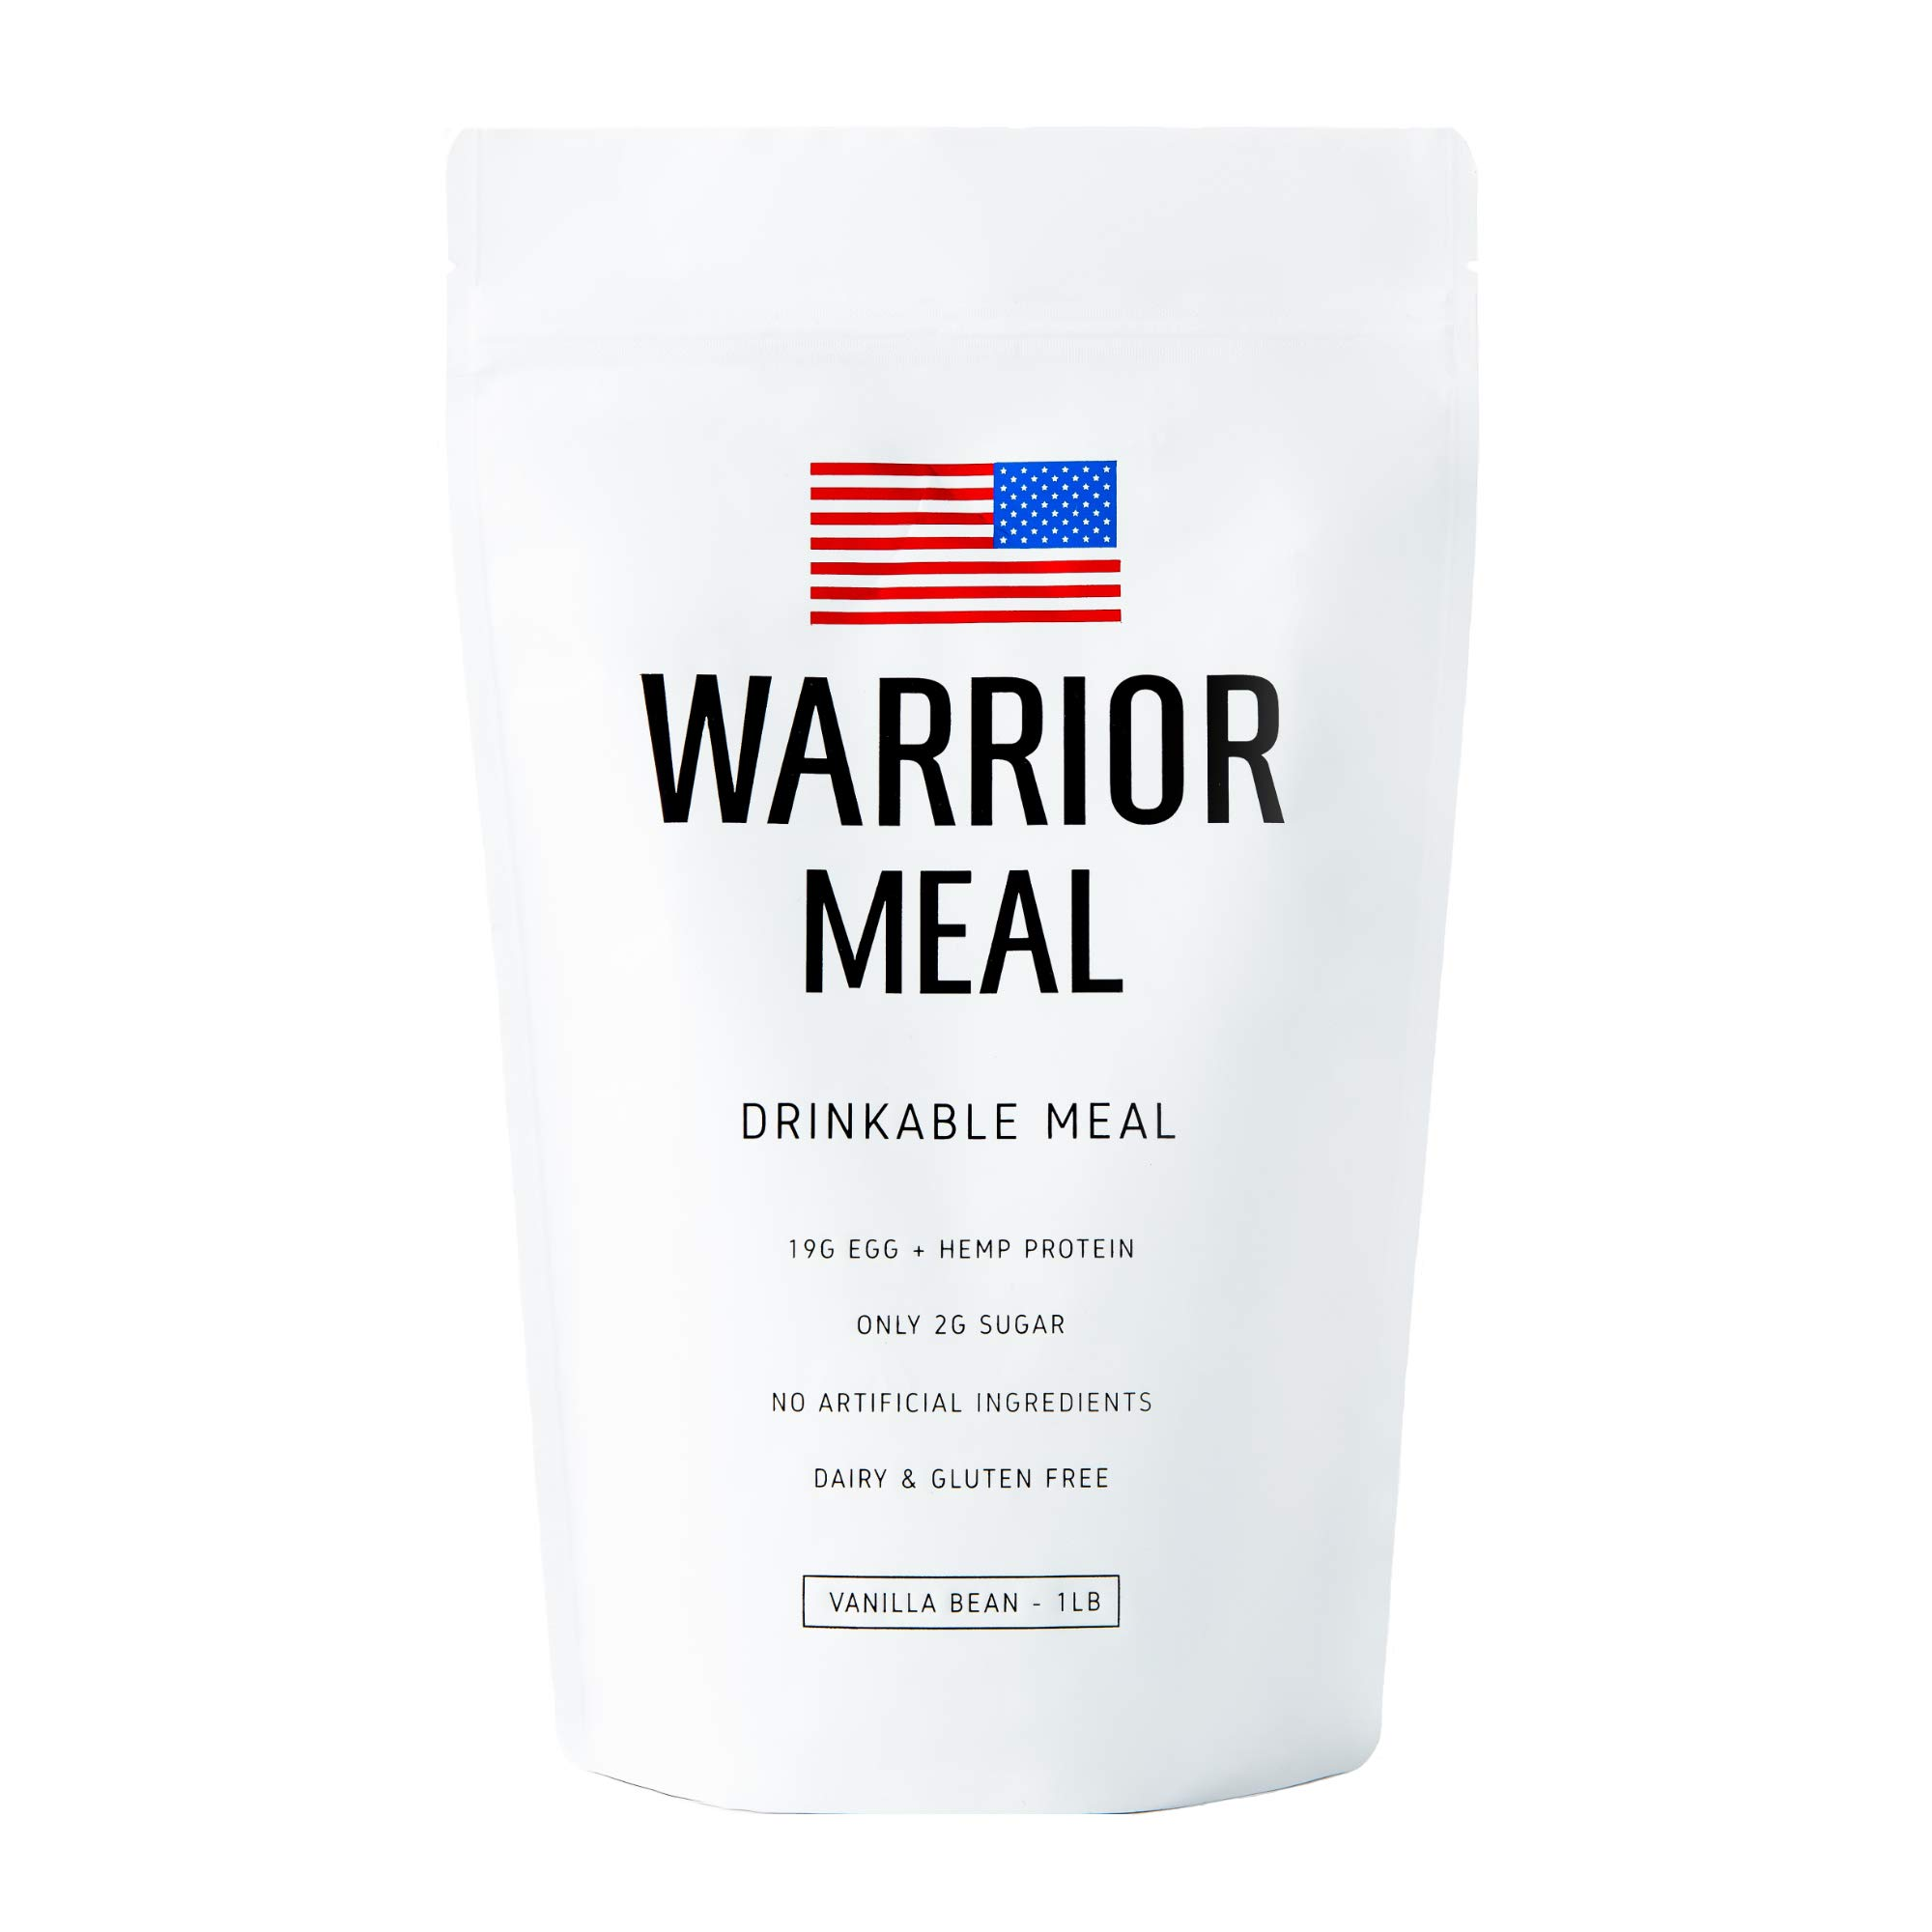 Warrior Meal - All Natural Protein Shake & Meal Replacement, Vanilla Bean, 10 Meal Bag (1LB), Dairy-Free, Soy-Free